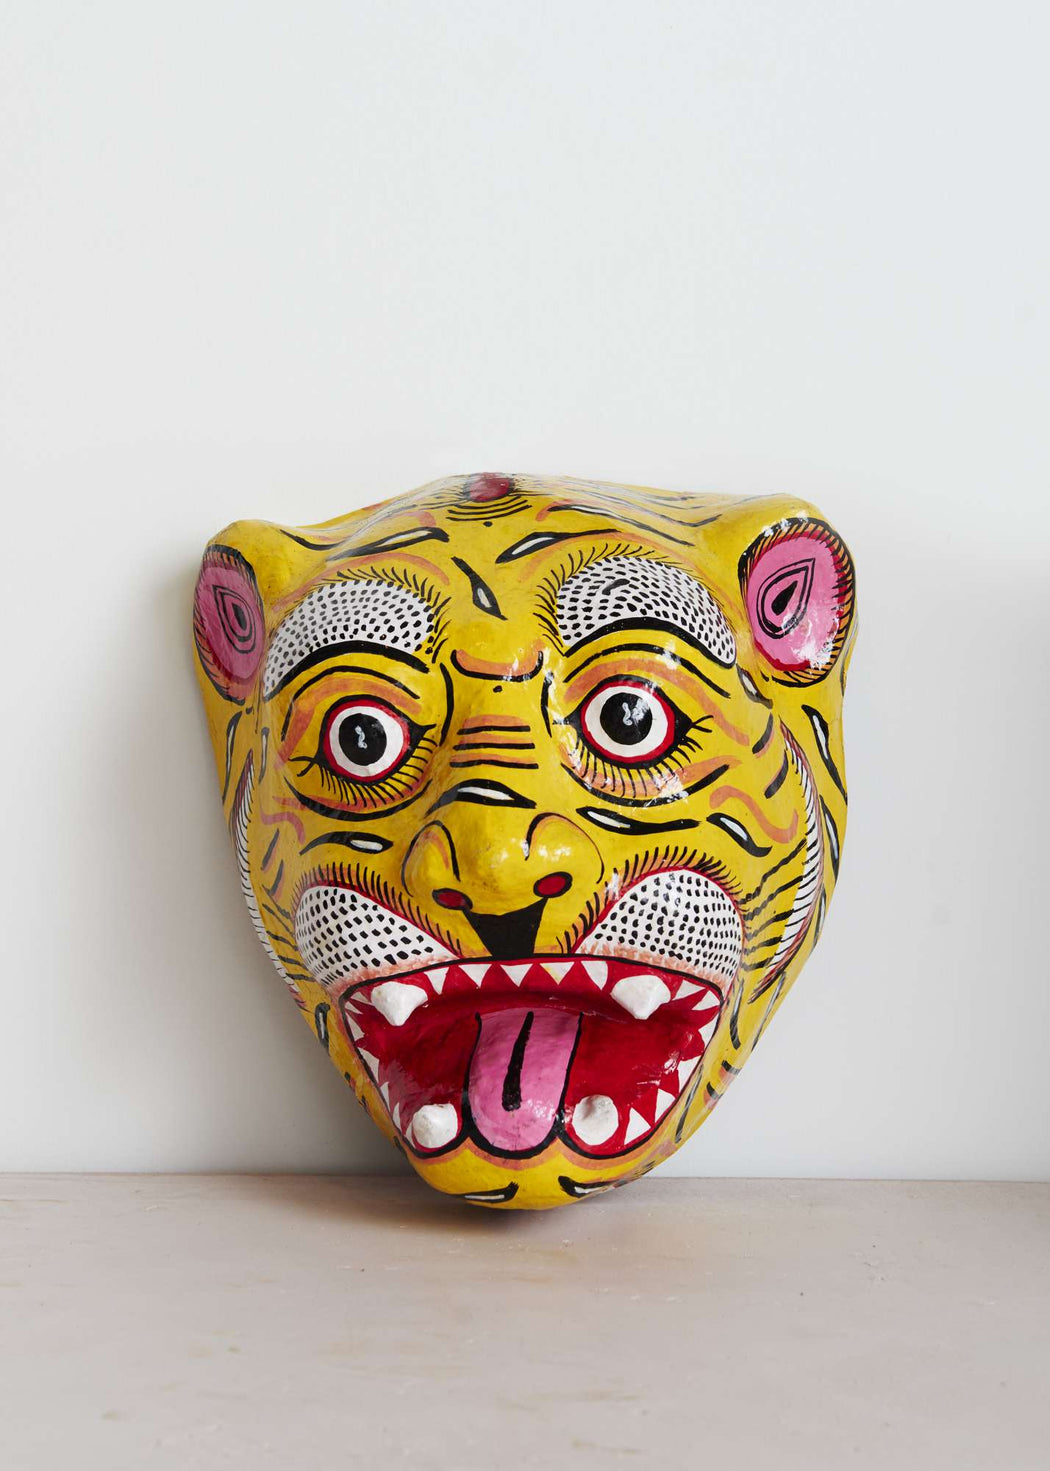 This is a shop, mask, tiger, unique, interior, India